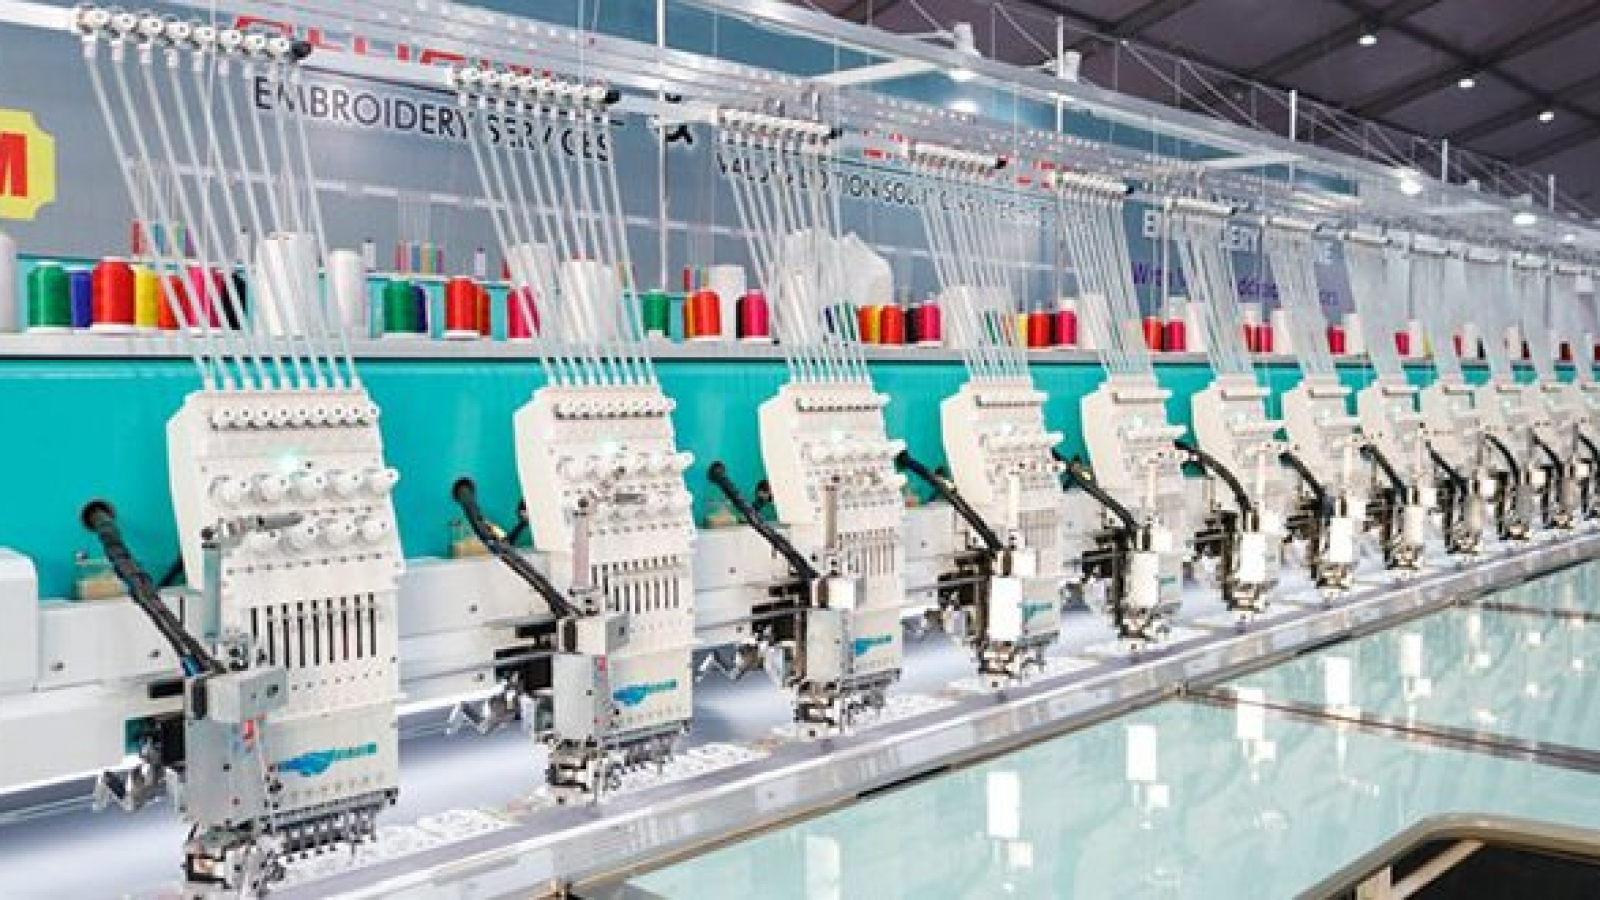 Best Cheap Embroidery Machines in 2021 | Commercial Use Machines